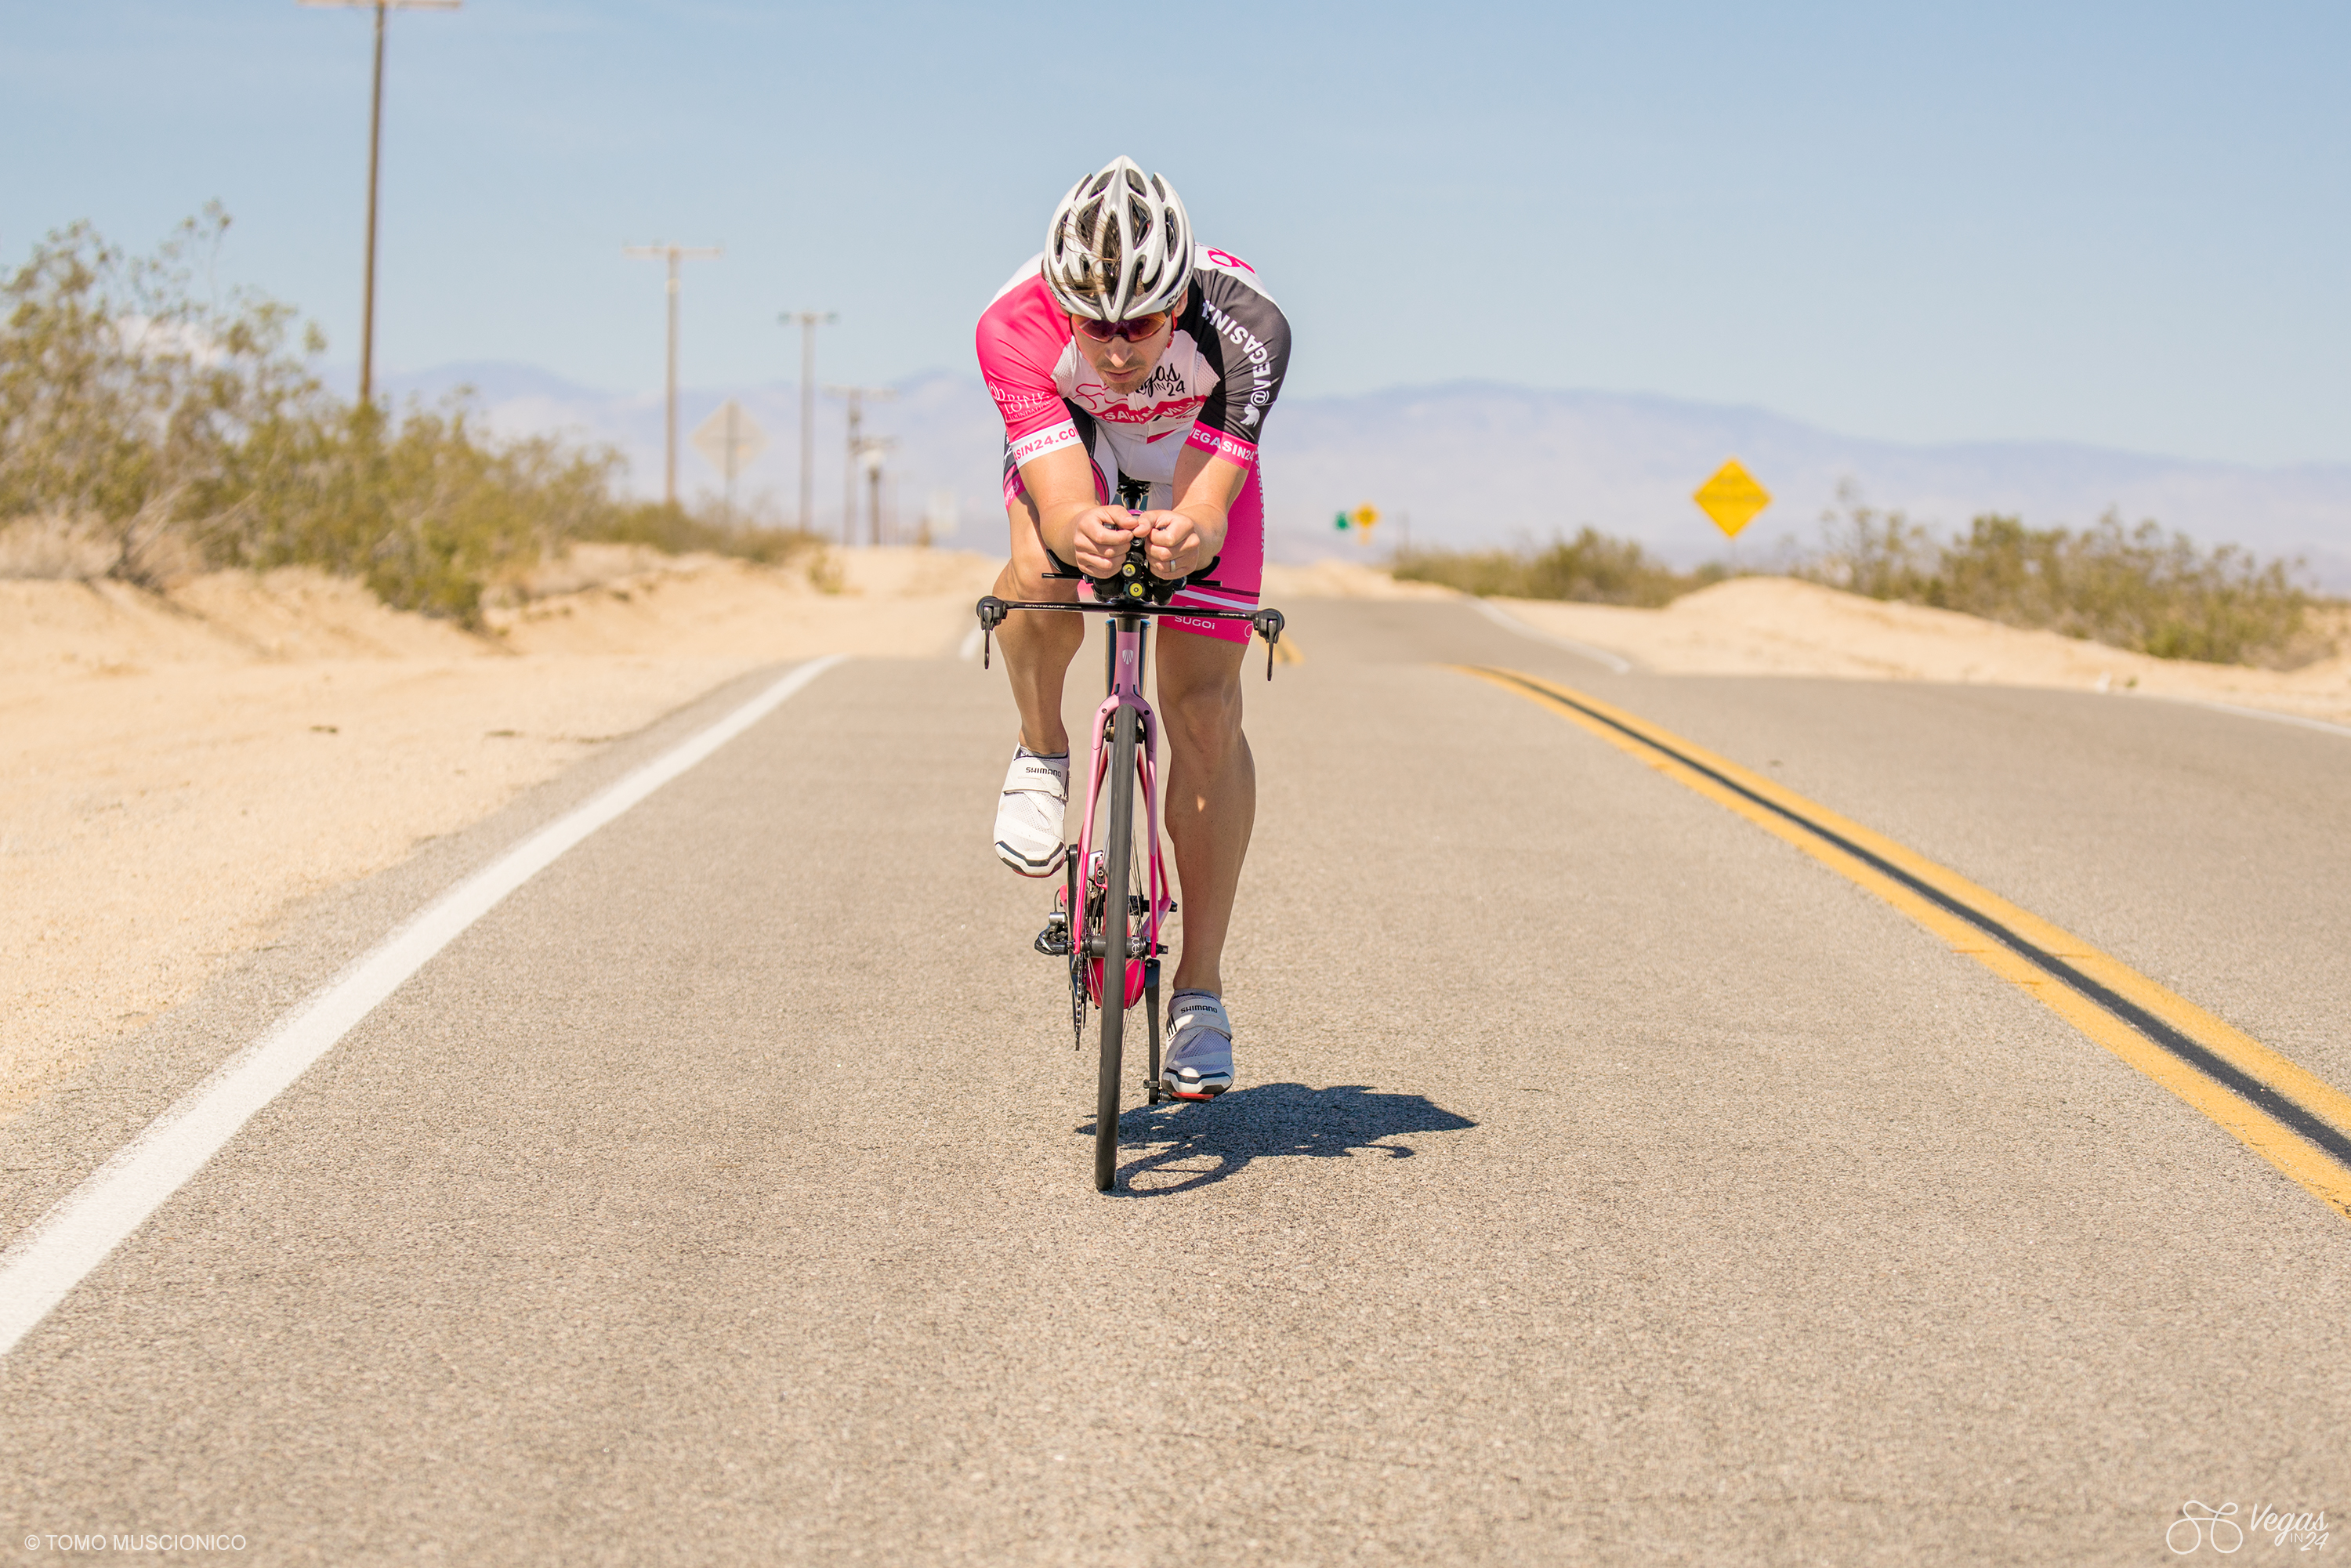 There is no shelter in the desert as Andy Funk is slicing through the crosswind. Andy is grabbing his aerobars firmly in anticipation of the next wind gust.